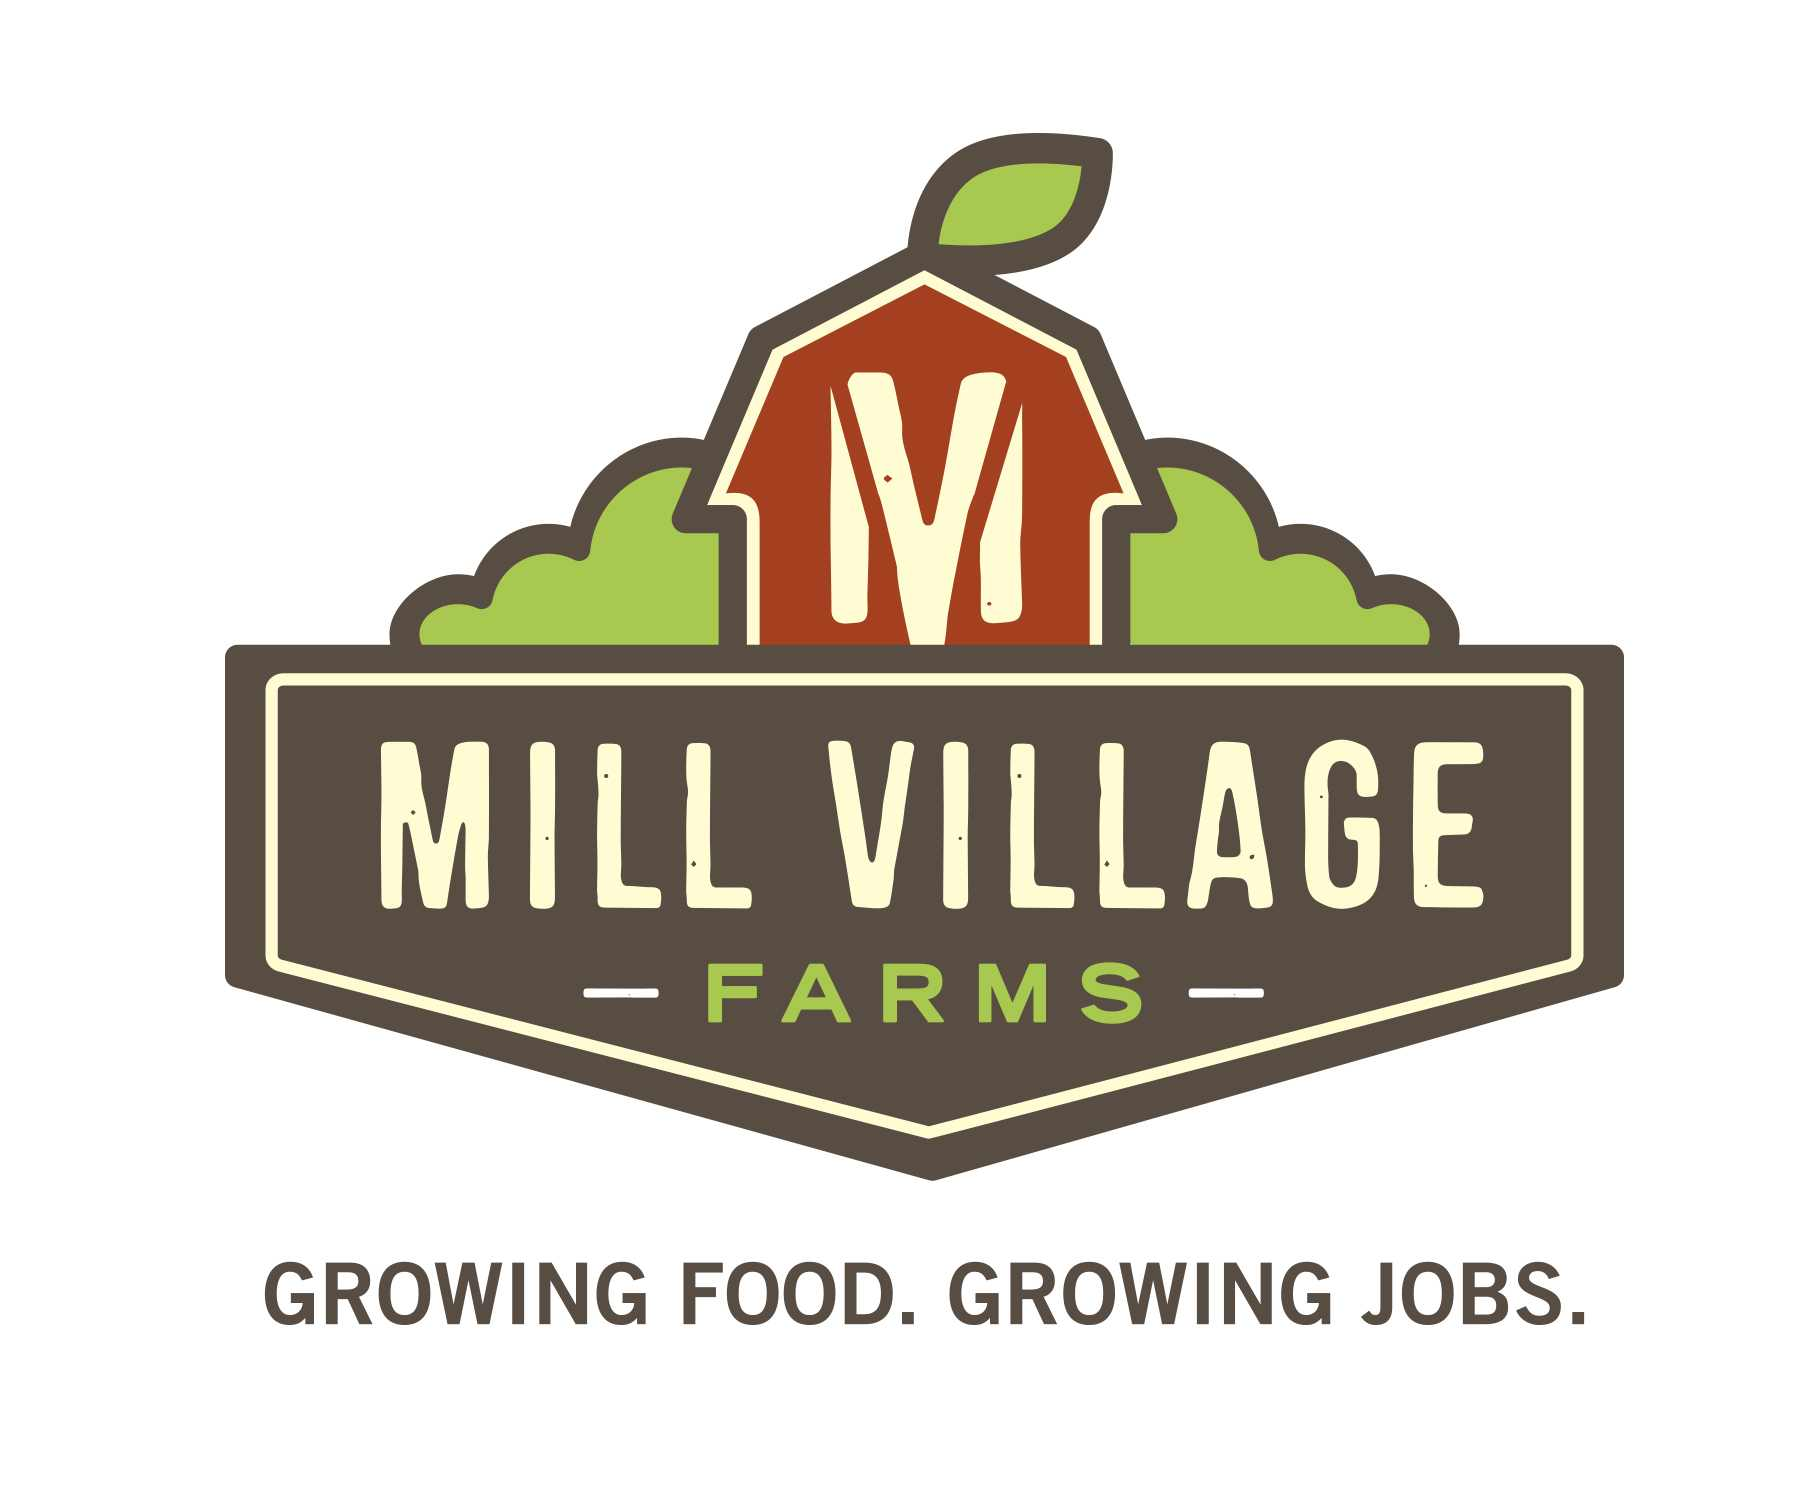 We Re Growing And Growing So Now We Re Hiring Mill Village Farms